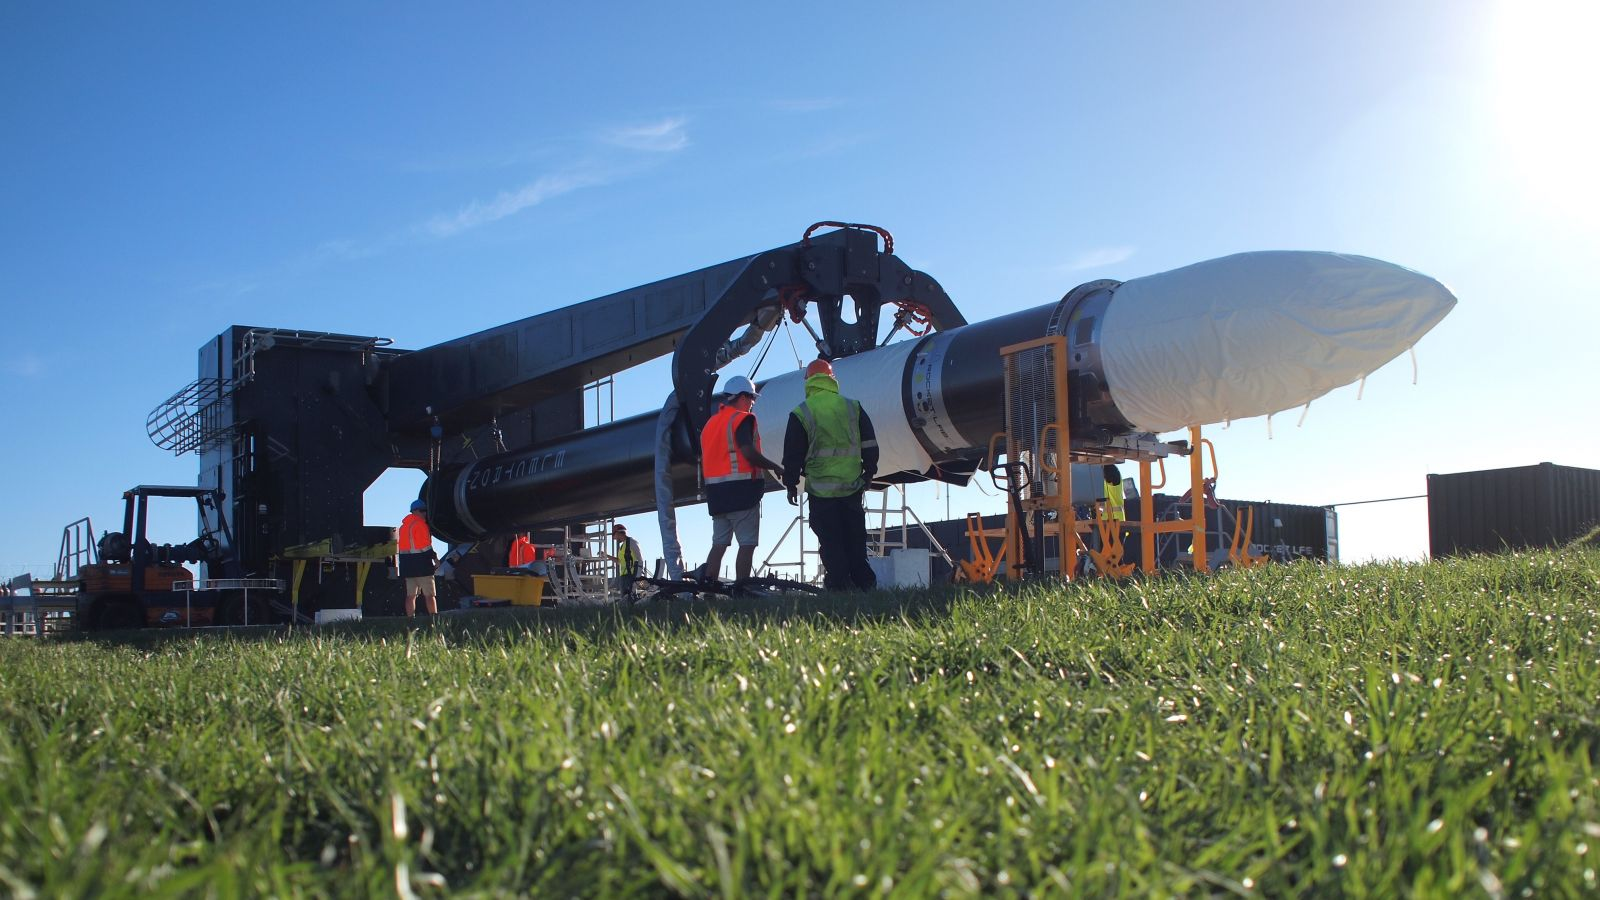 Rocket Lab's Electron rocket as seen before being raised to vertical. The vehicle's maiden flight will occur sometime in late-May 2017 from New Zealand. Spaceflight Industries has purchased a dedicated rocket for its rideshare program. Photo Credit: Rocket Lab